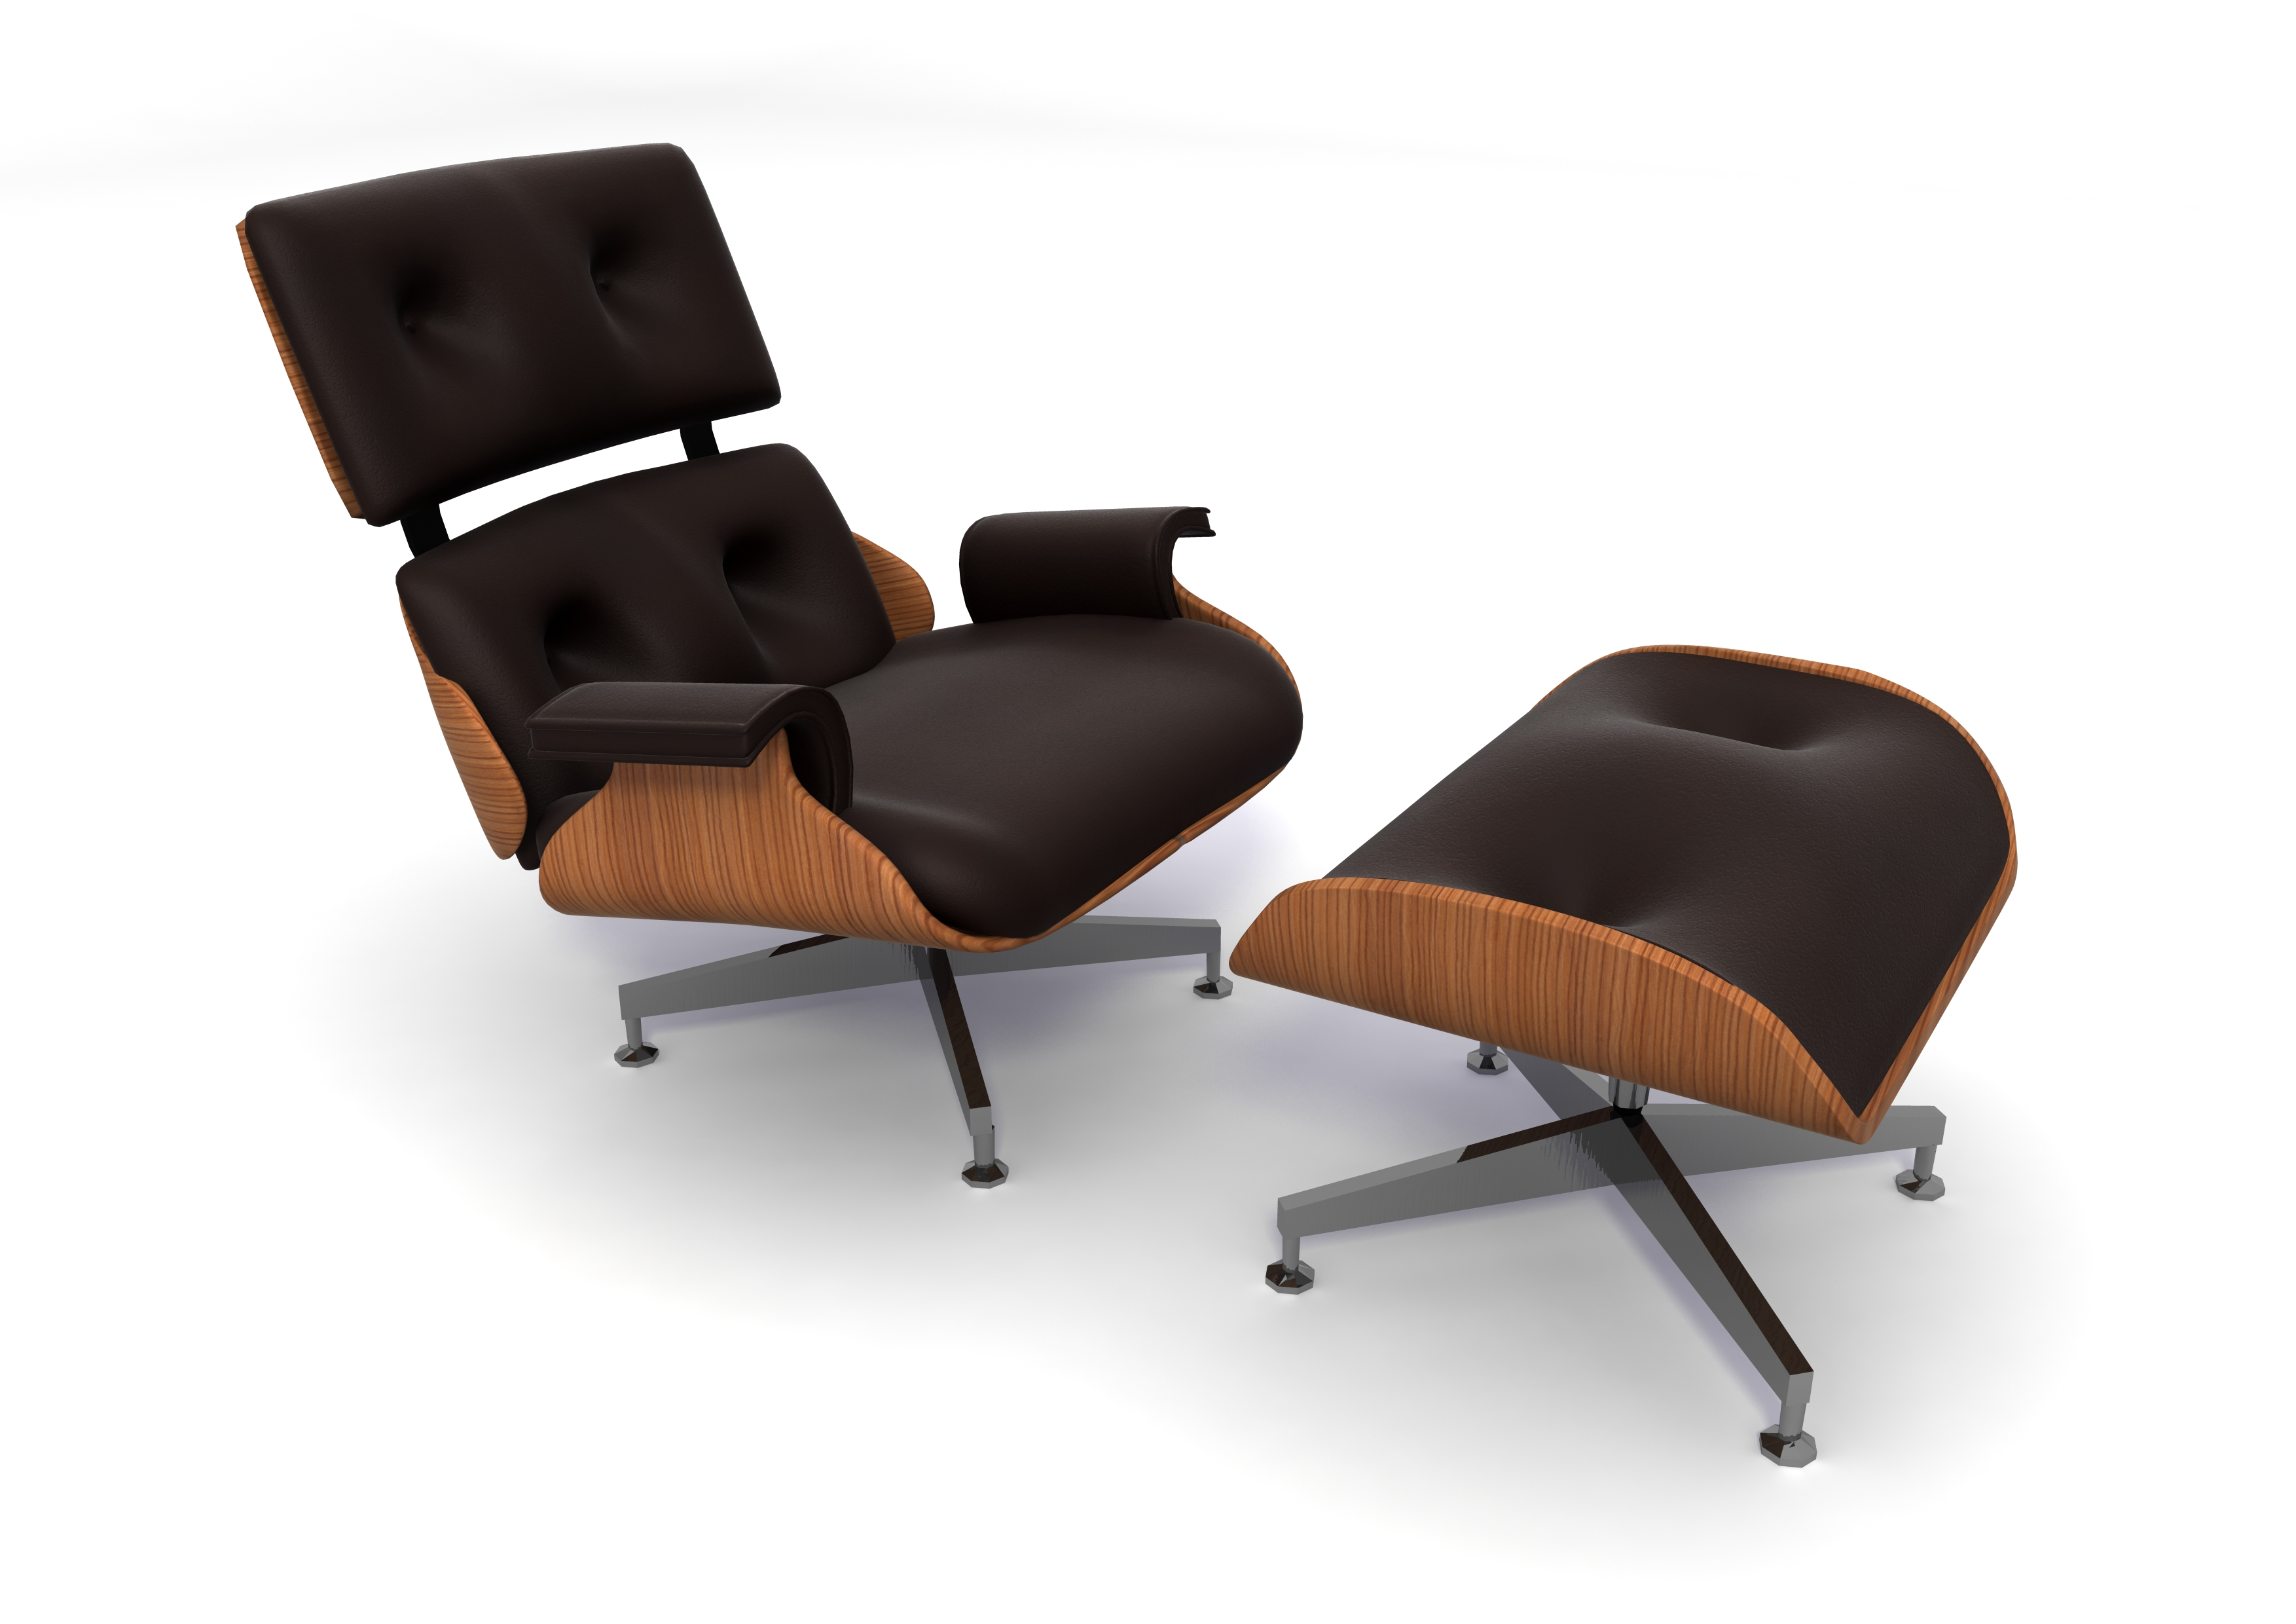 Eames chair florian stephens freelance 3d designer for Design classics furniture reproductions